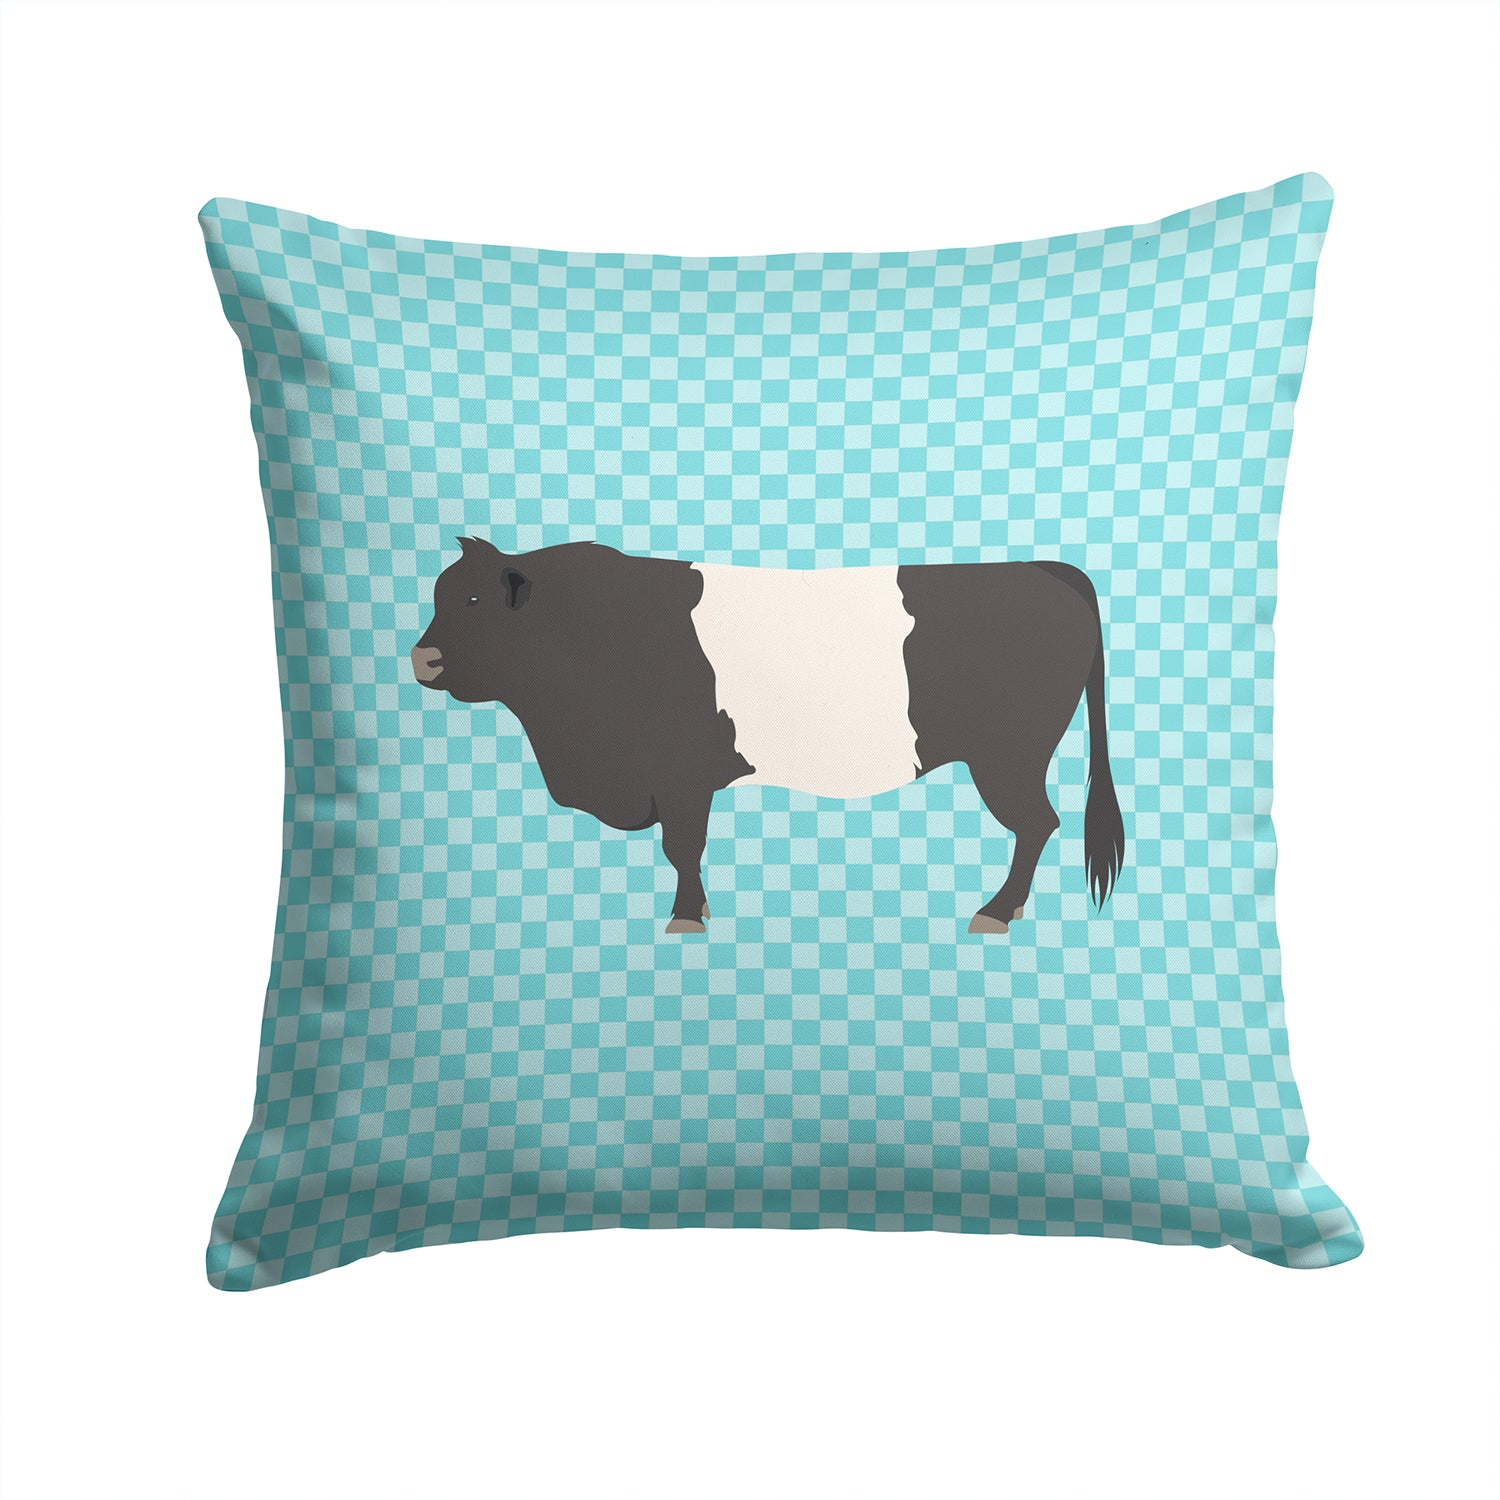 Belted Galloway Cow Blue Check Fabric Decorative Pillow BB8005PW1414 by Caroline's Treasures